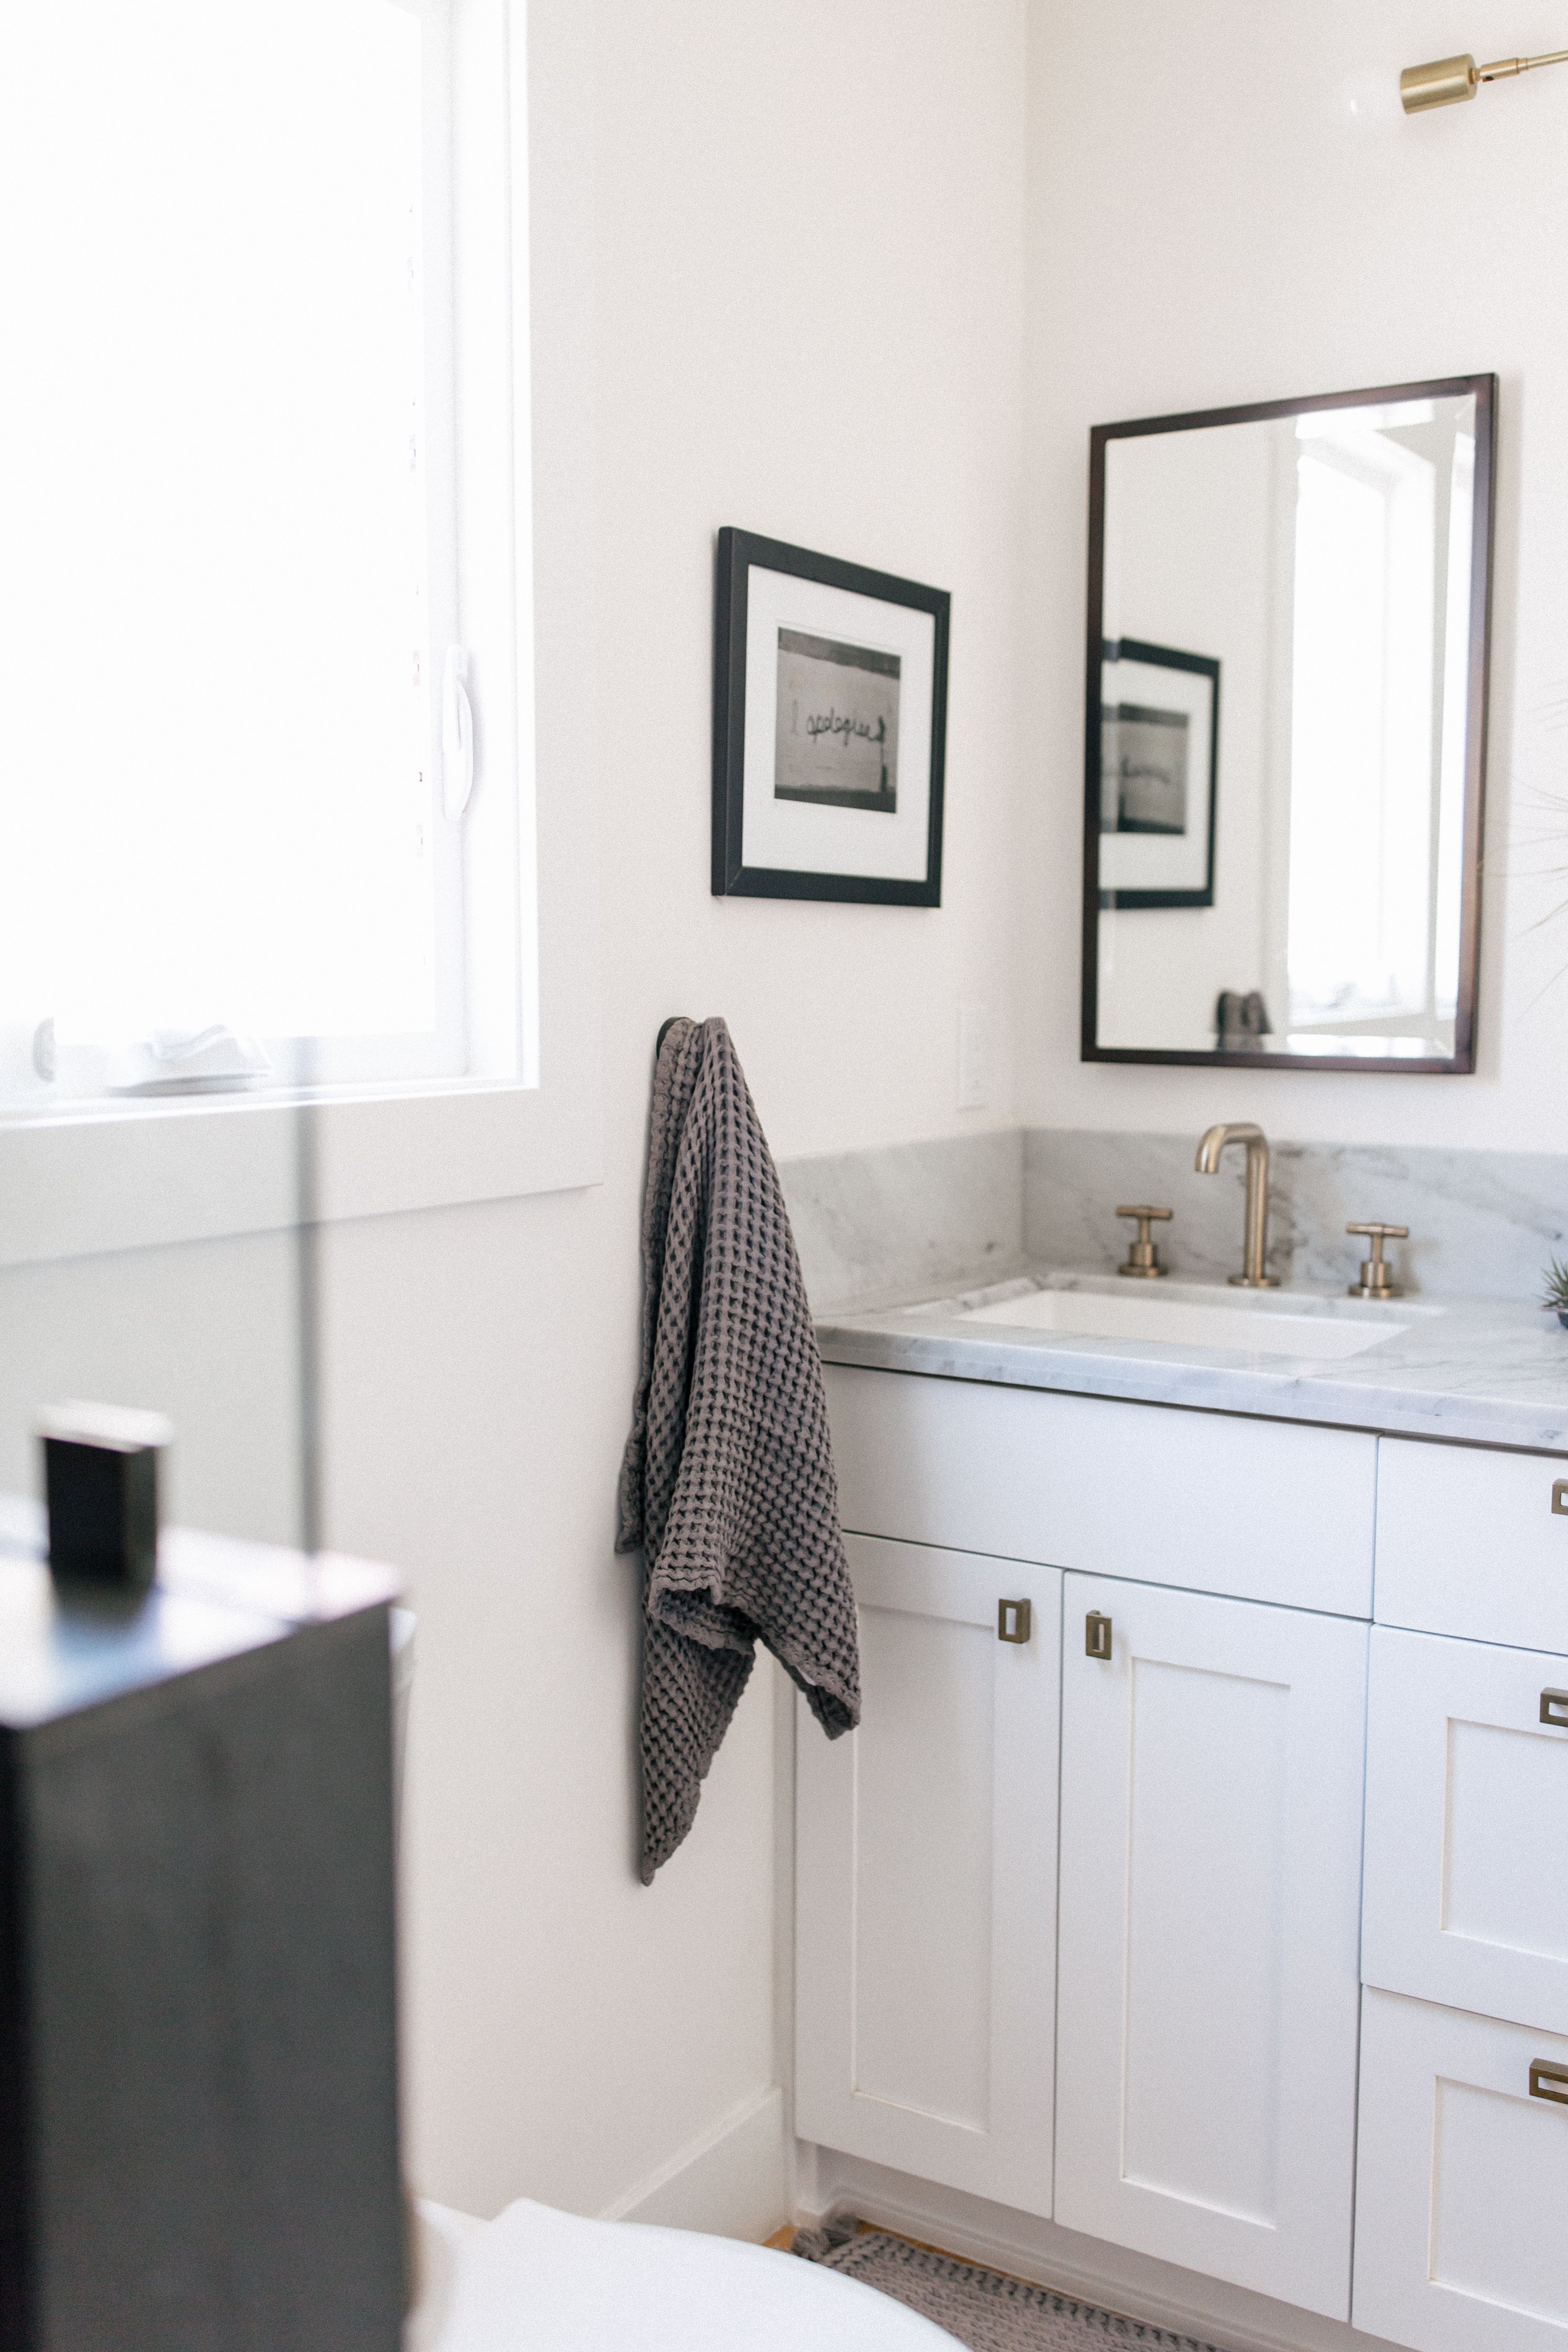 Light Grey And White Marble Contrast With The Black Mirror And